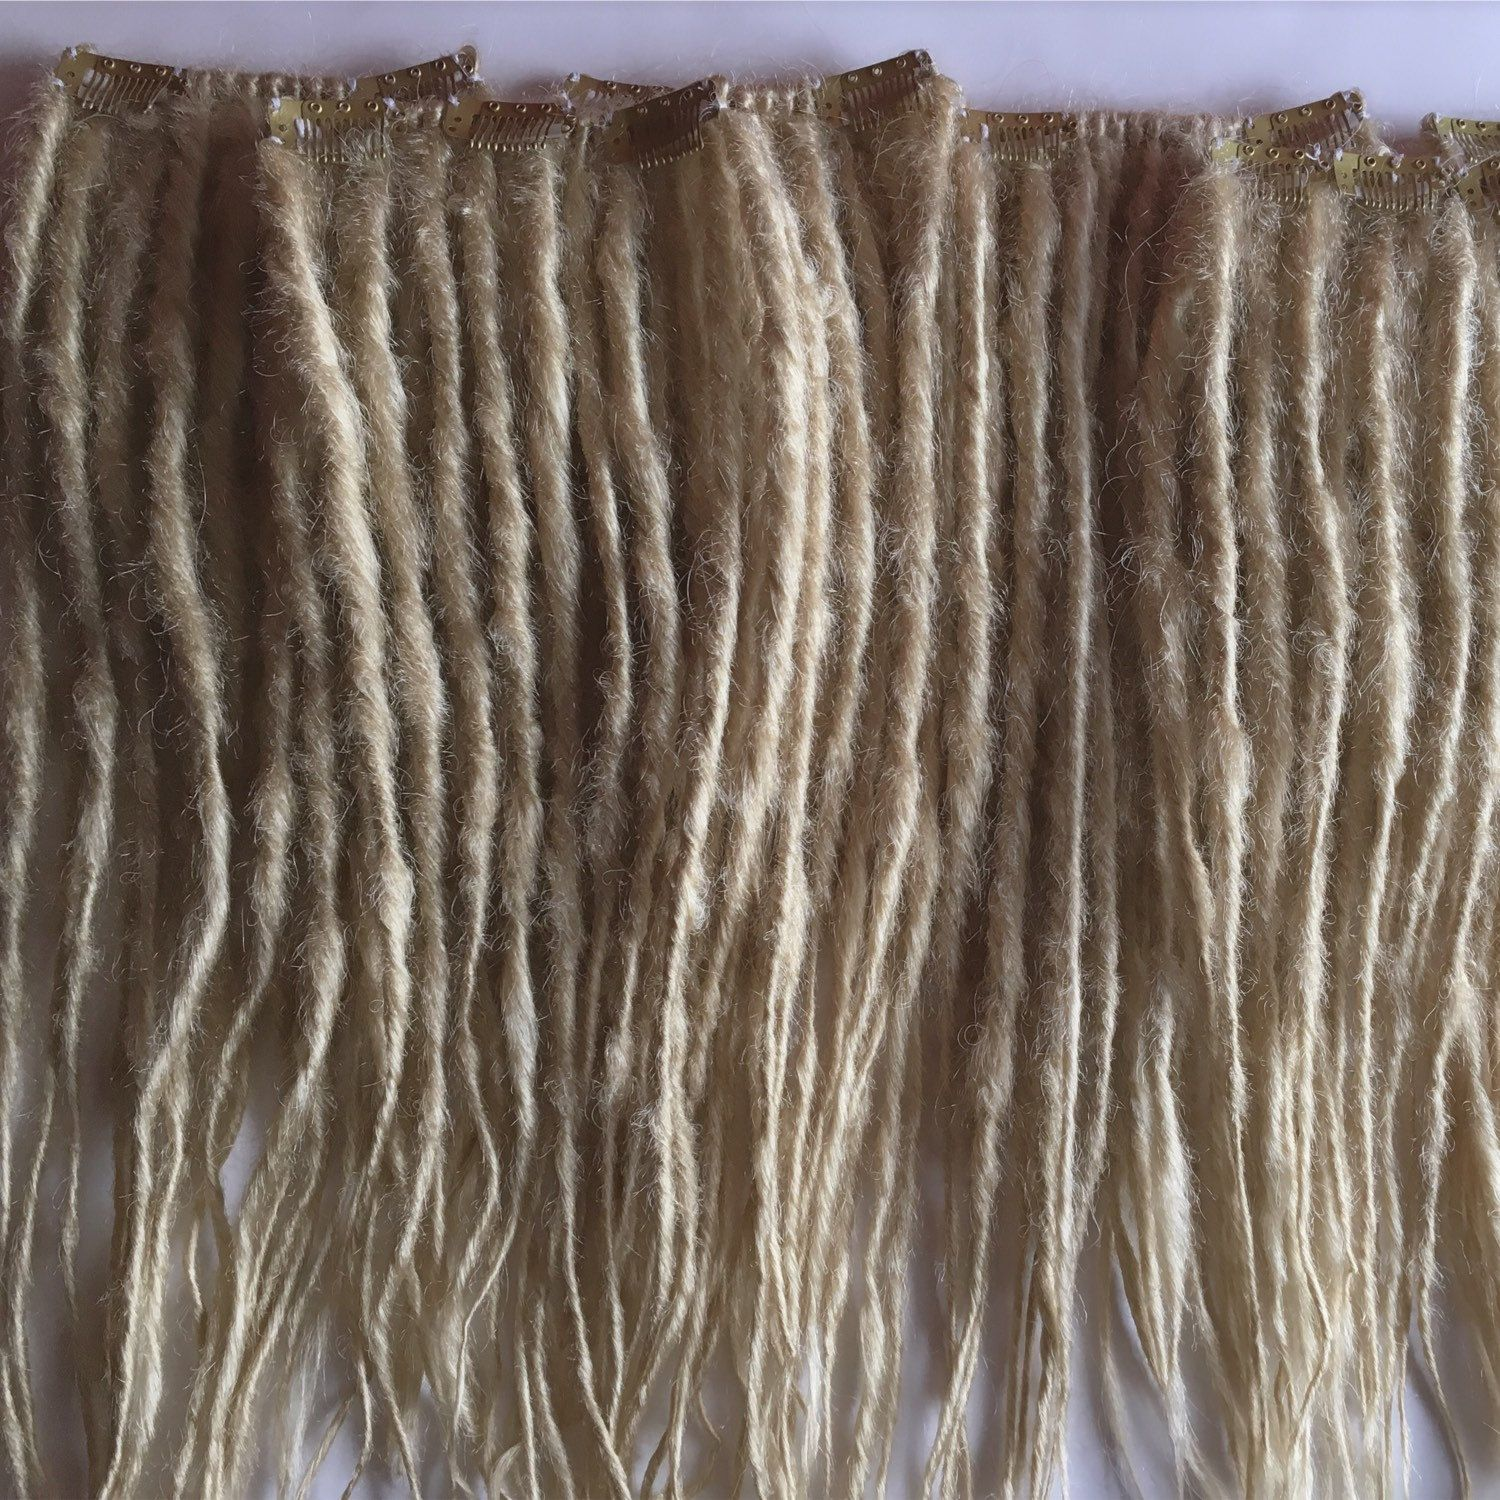 20 Clip in Dreadlocks SE Single Ended Synthetic Dreads Dreadlocs